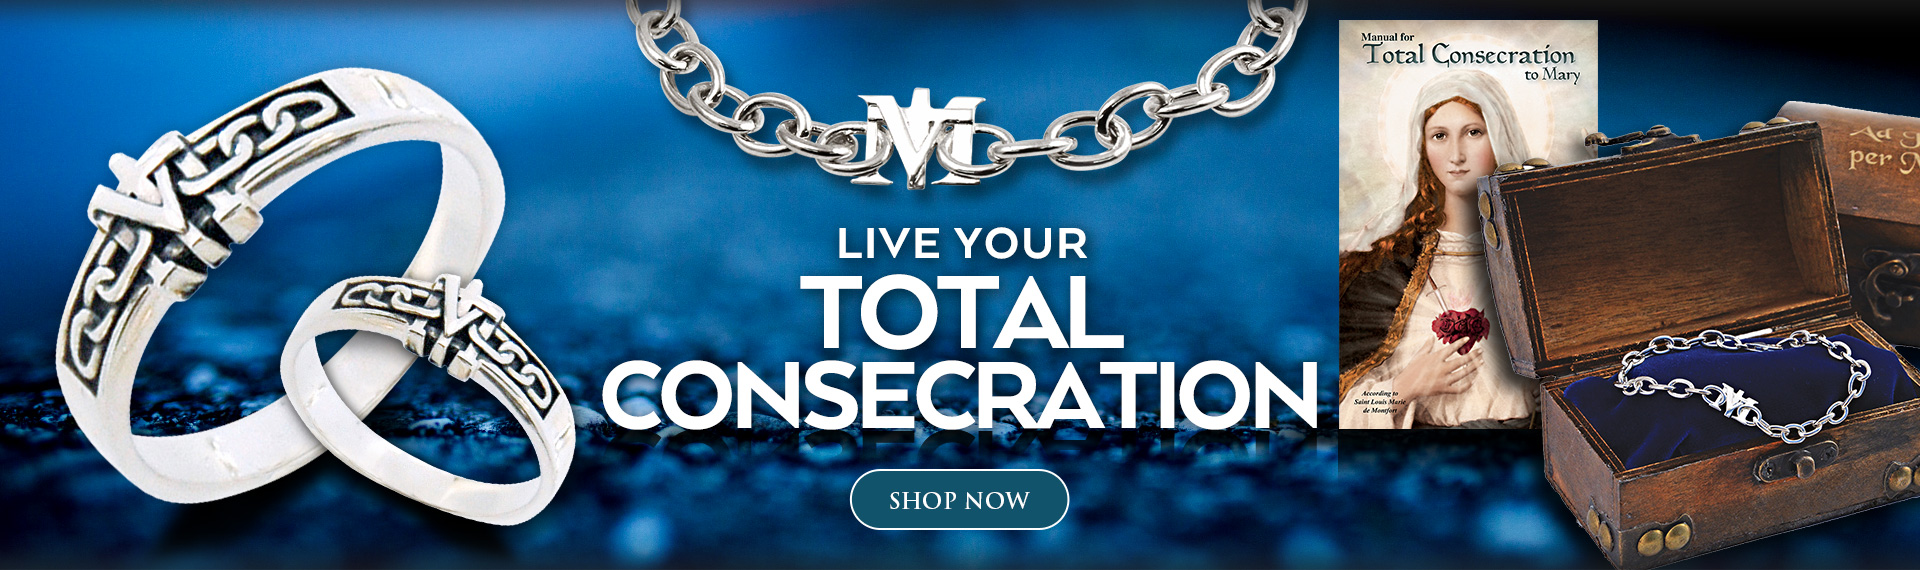 Live your Total Consecration Banner. Click to go to Total Consecration products.